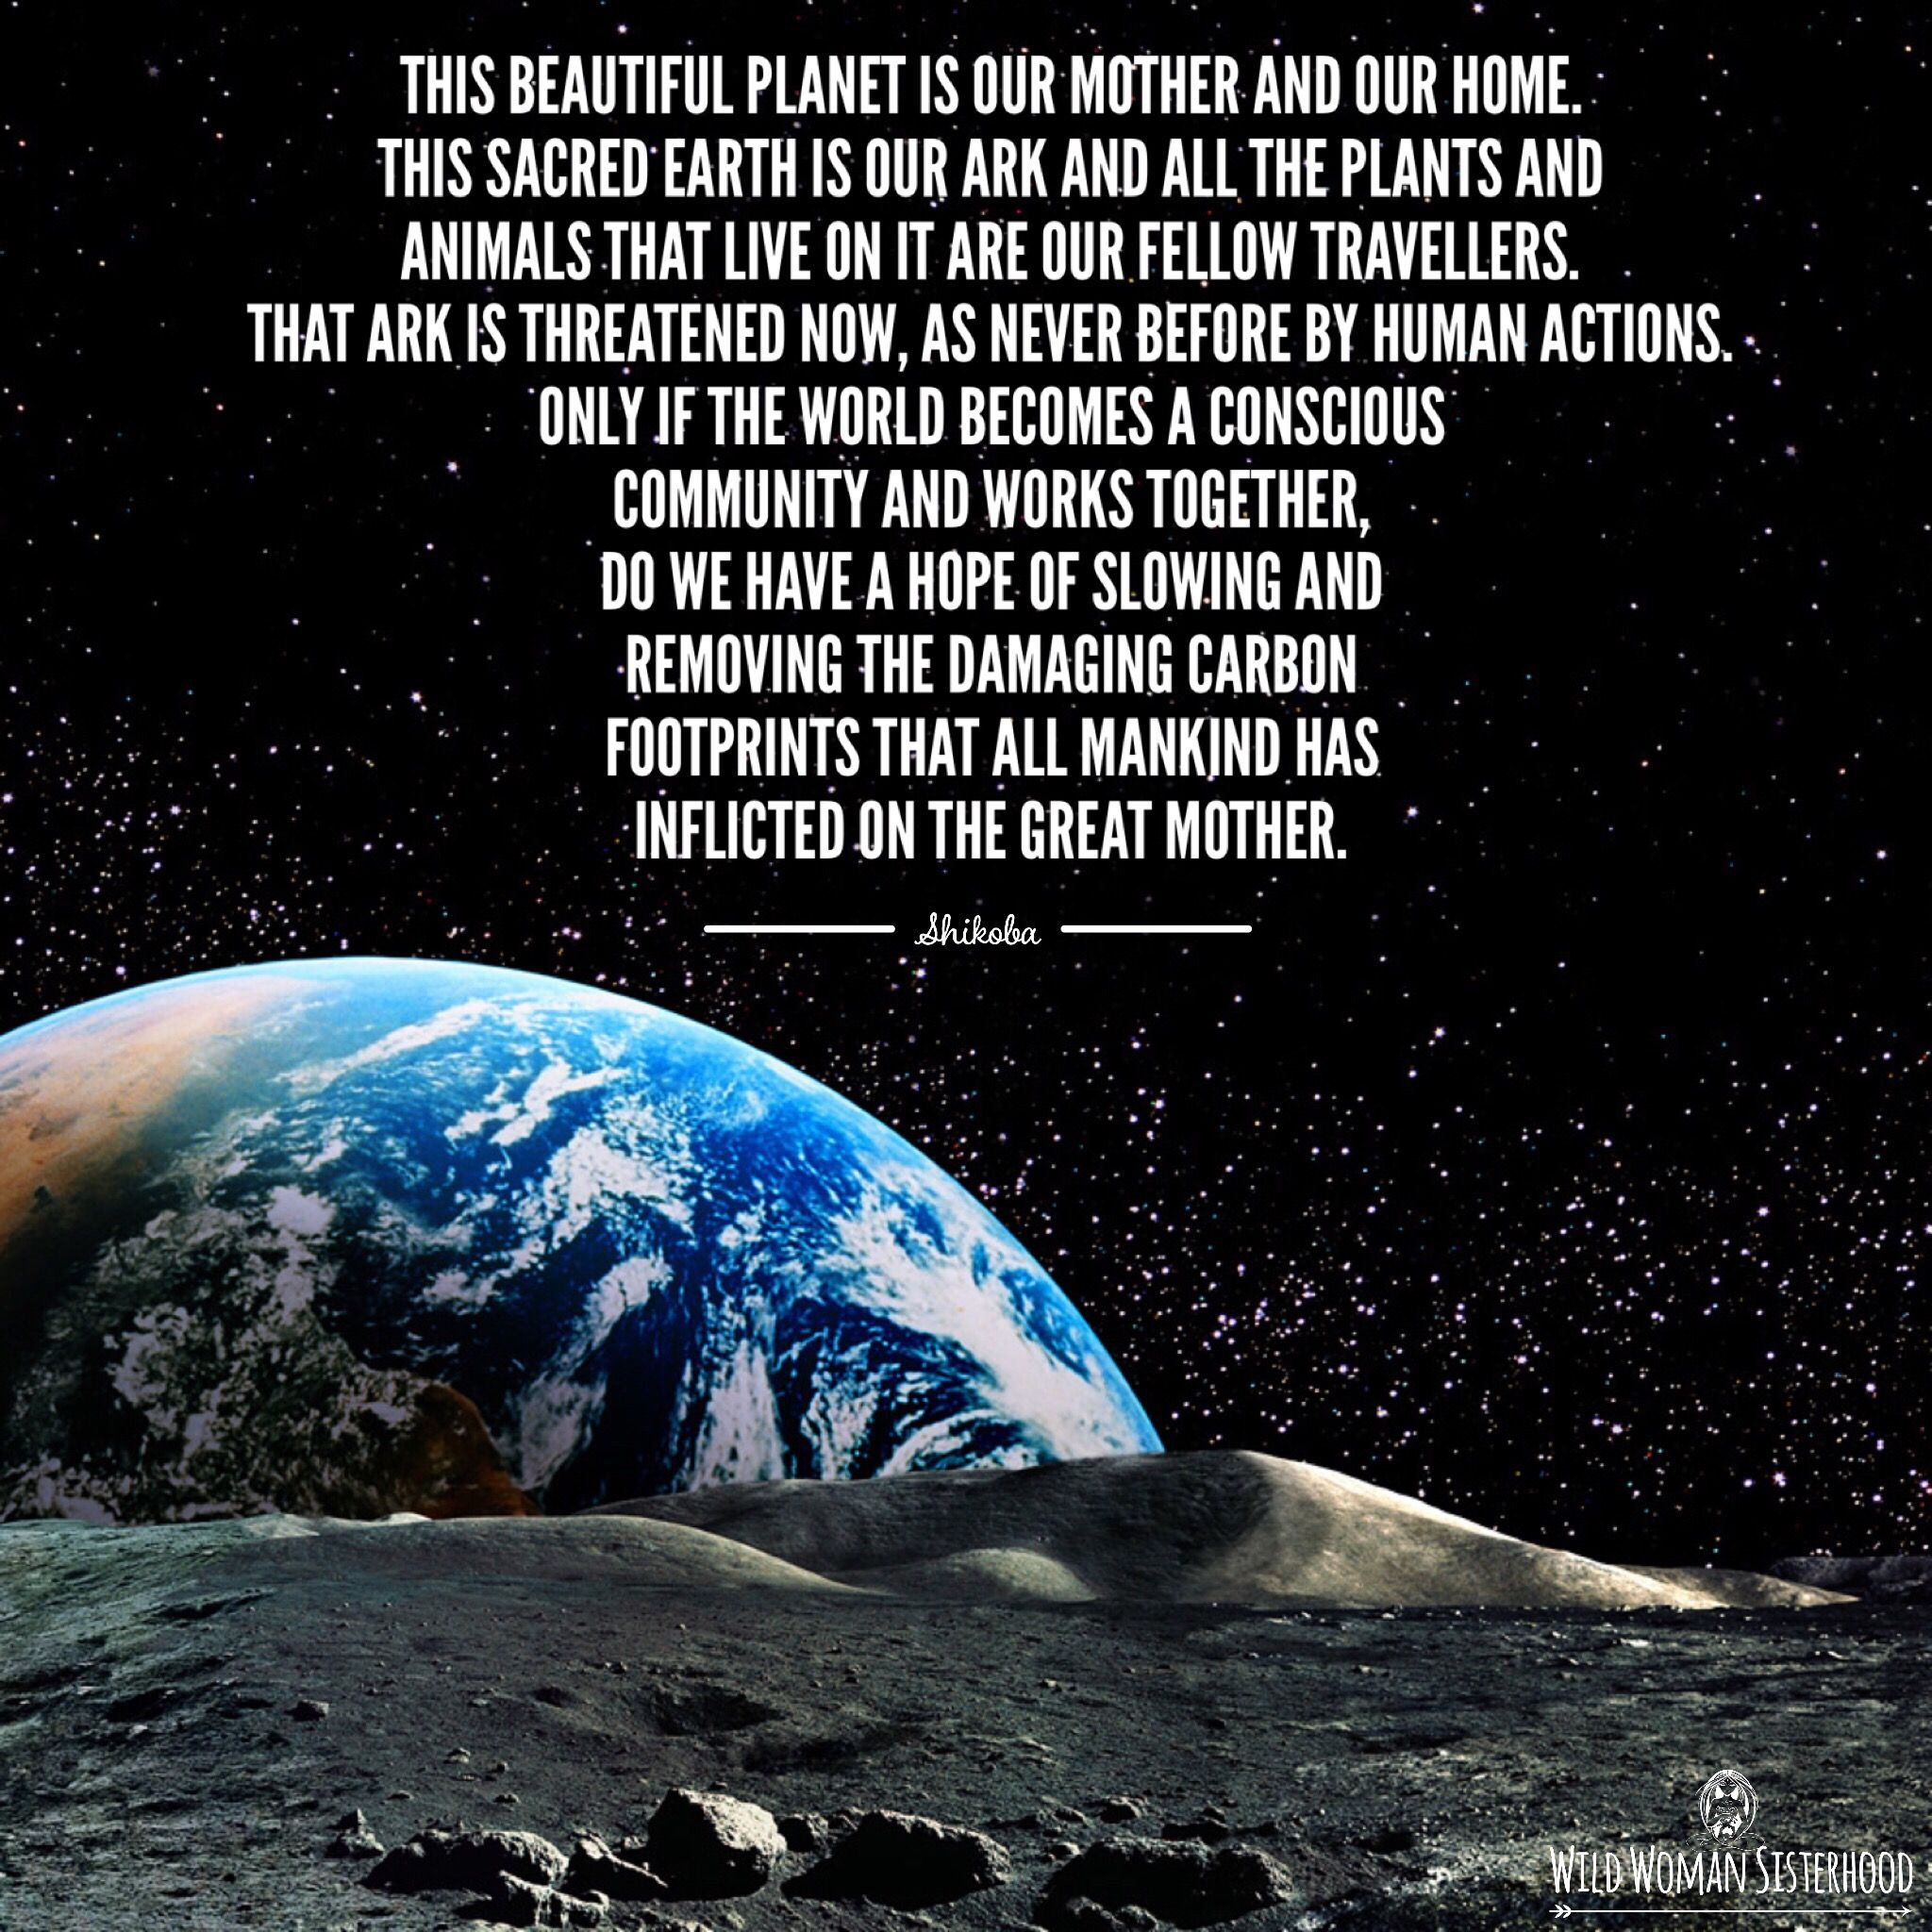 Our Home From Scratch: This Beautiful Planet Is Our Mother And Our Home. This